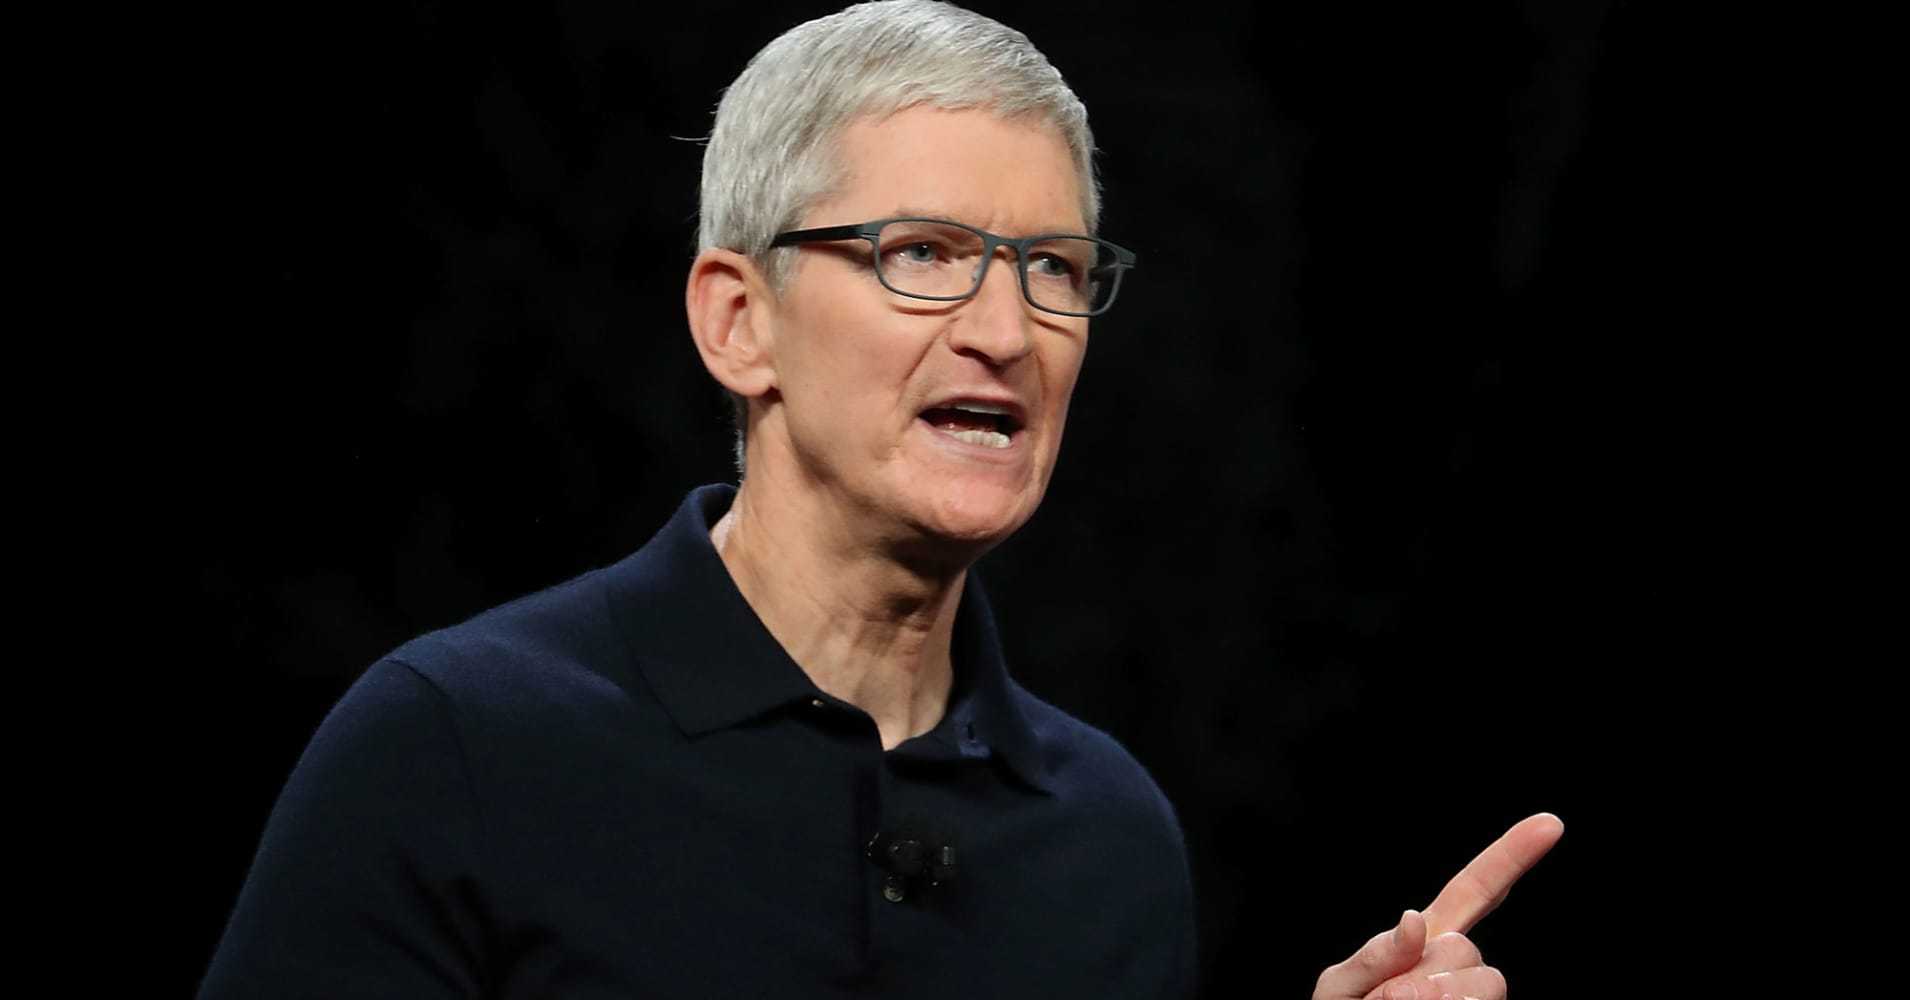 Apple's Tim Cook: 'Don't believe' tech companies that say they need your data